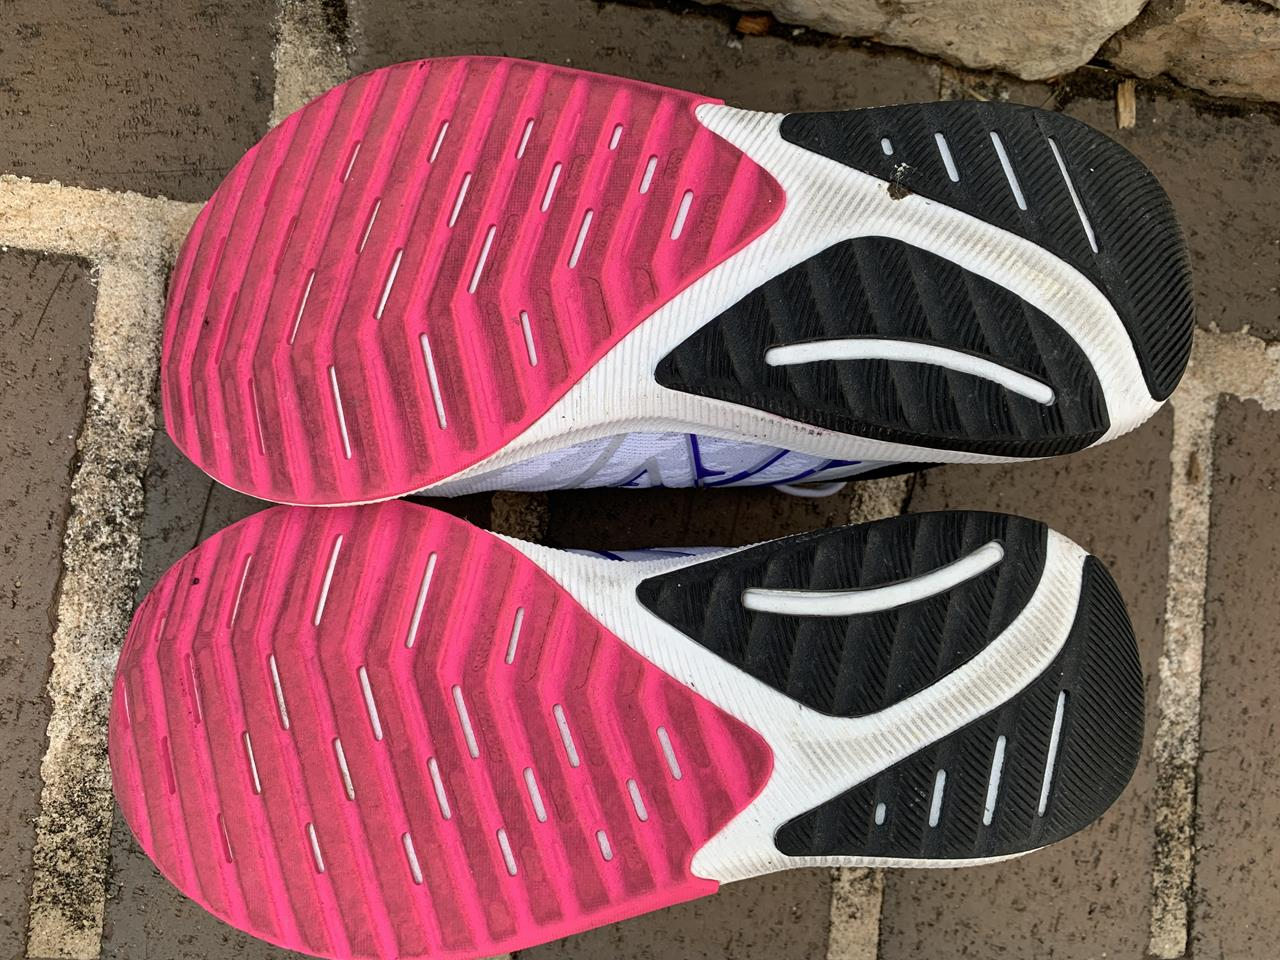 New Balance FuelCell Propel v3 - Sole